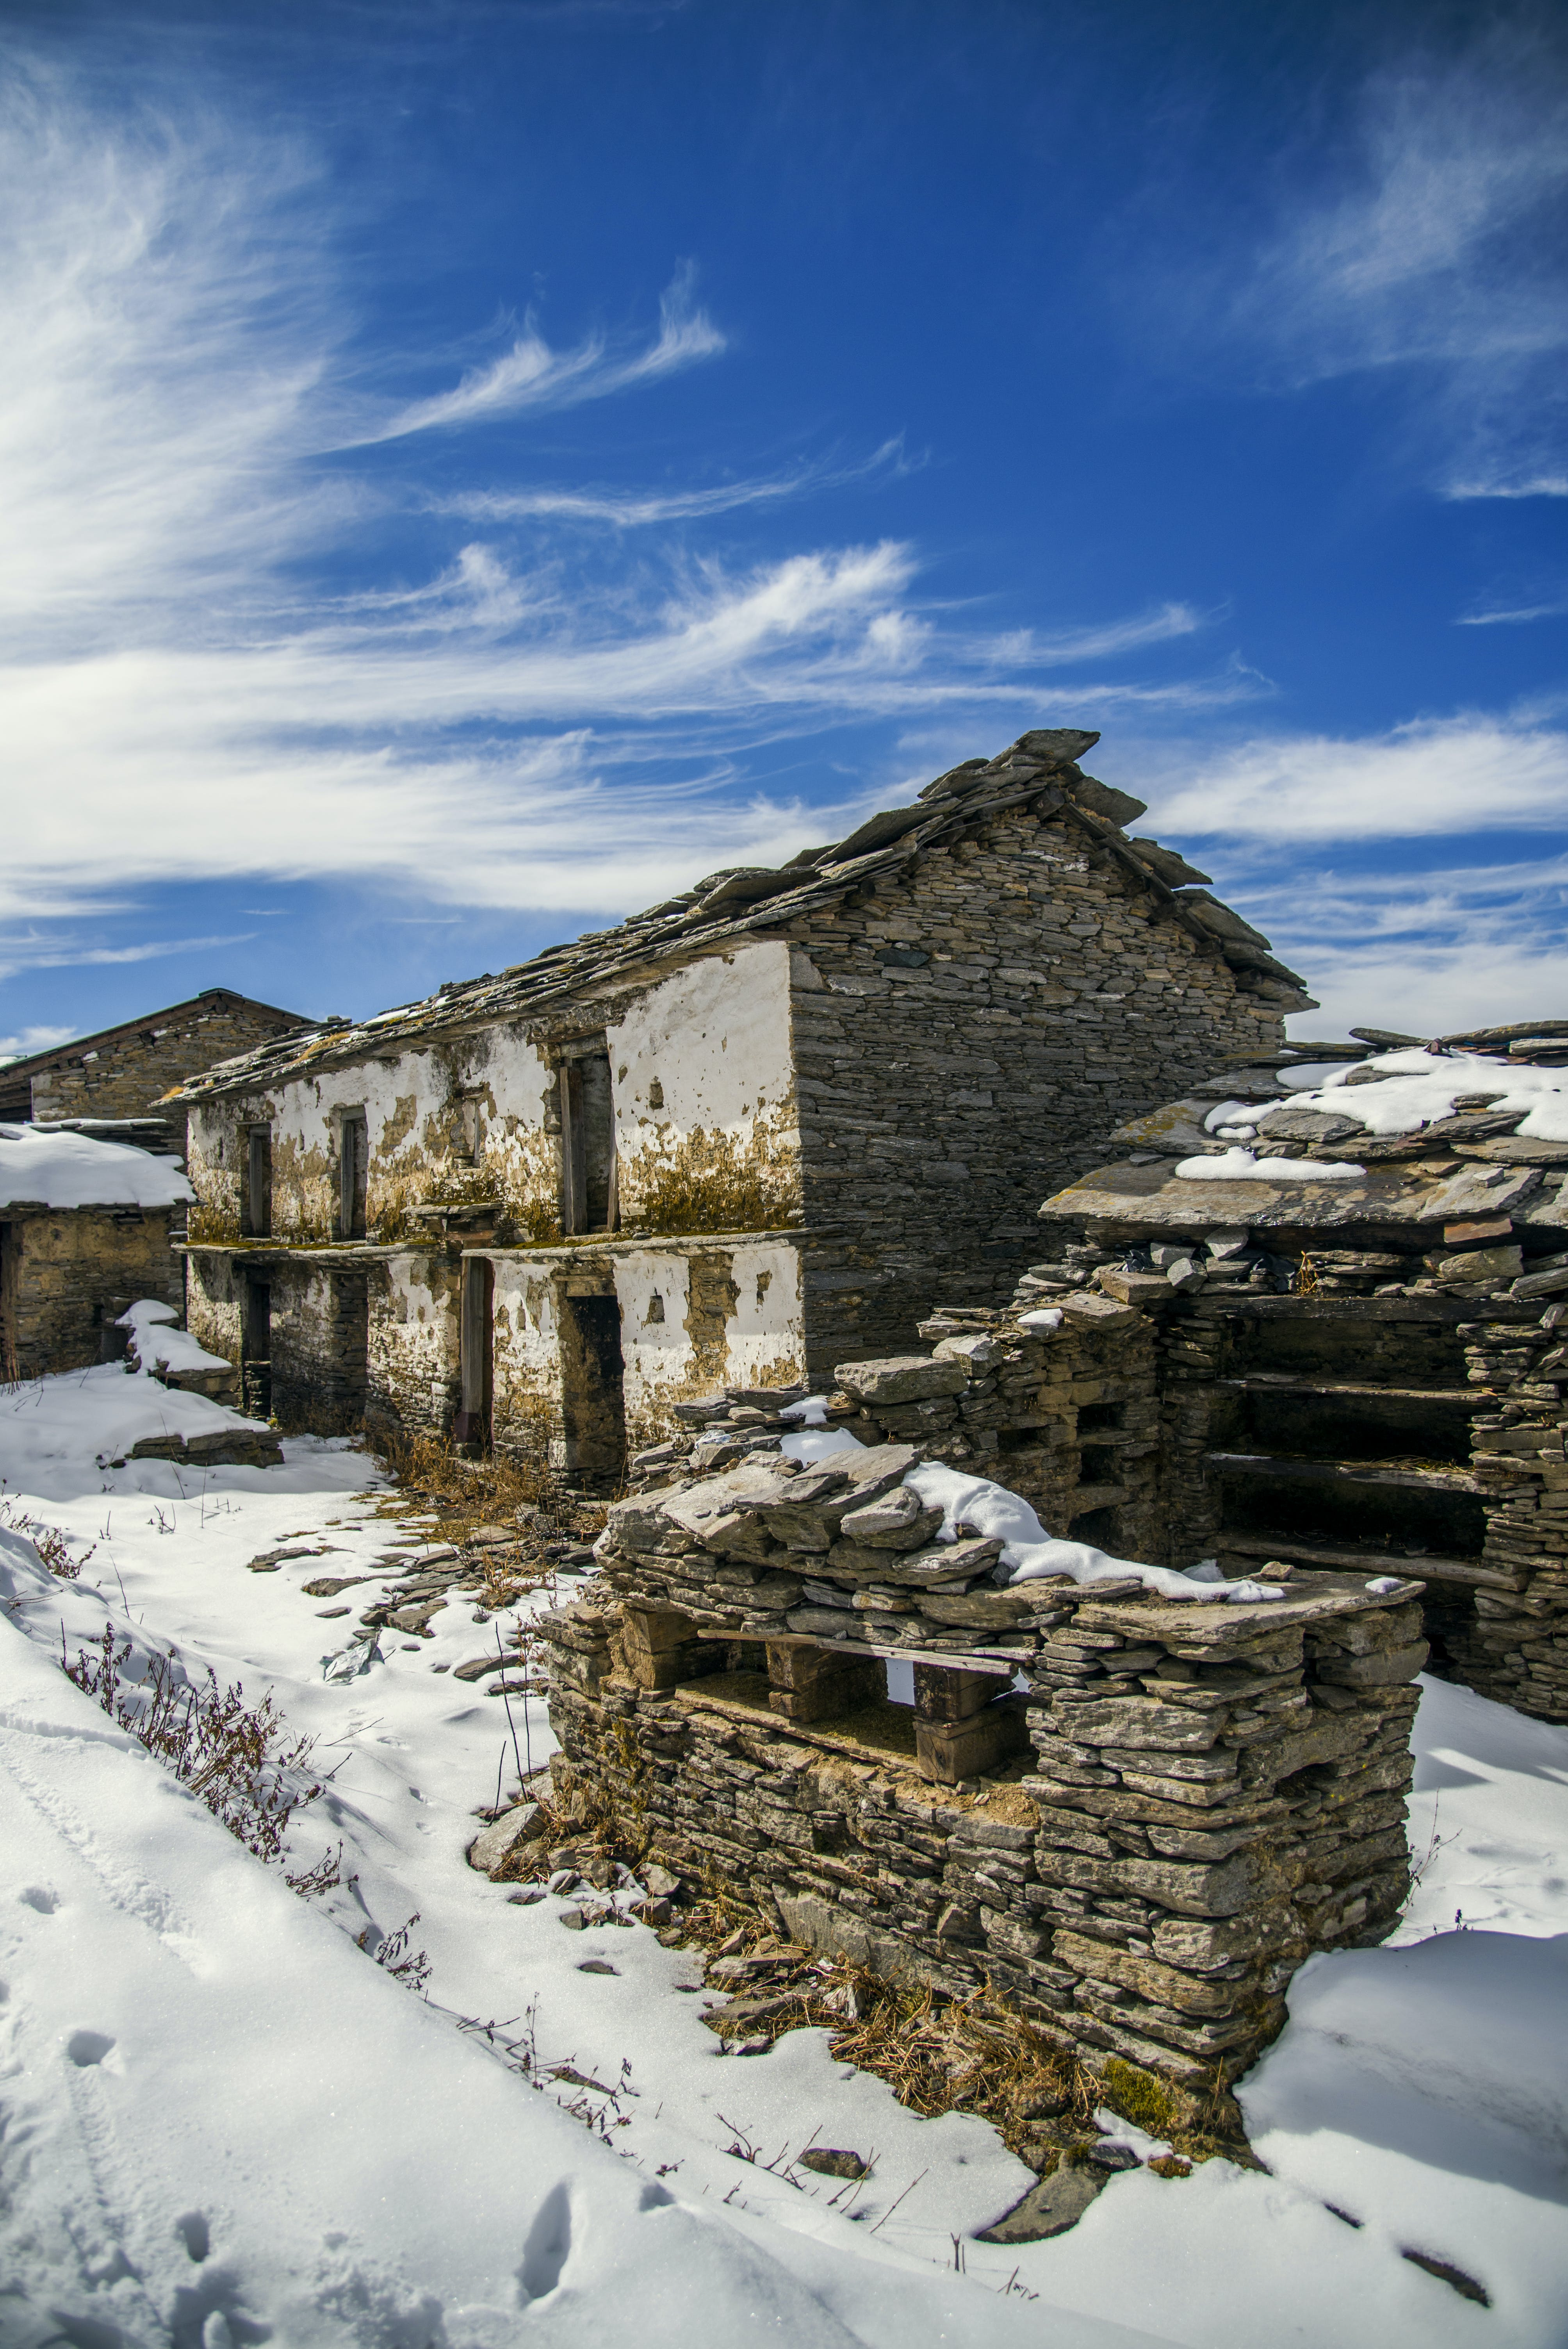 Ruined House on Snow Field